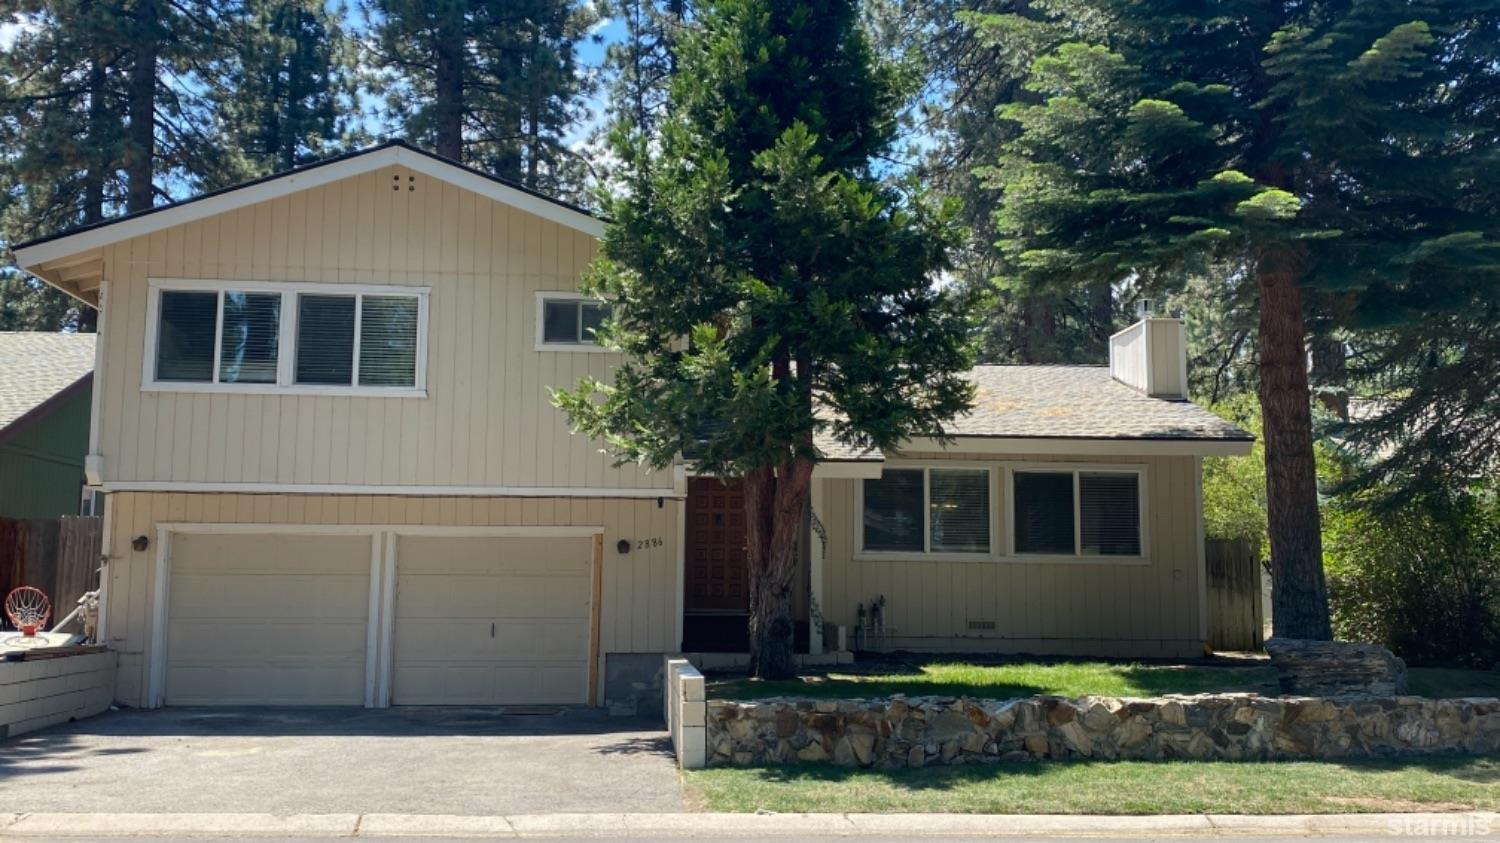 Image for 2886 Springwood Drive, South Lake Tahoe, CA 96150